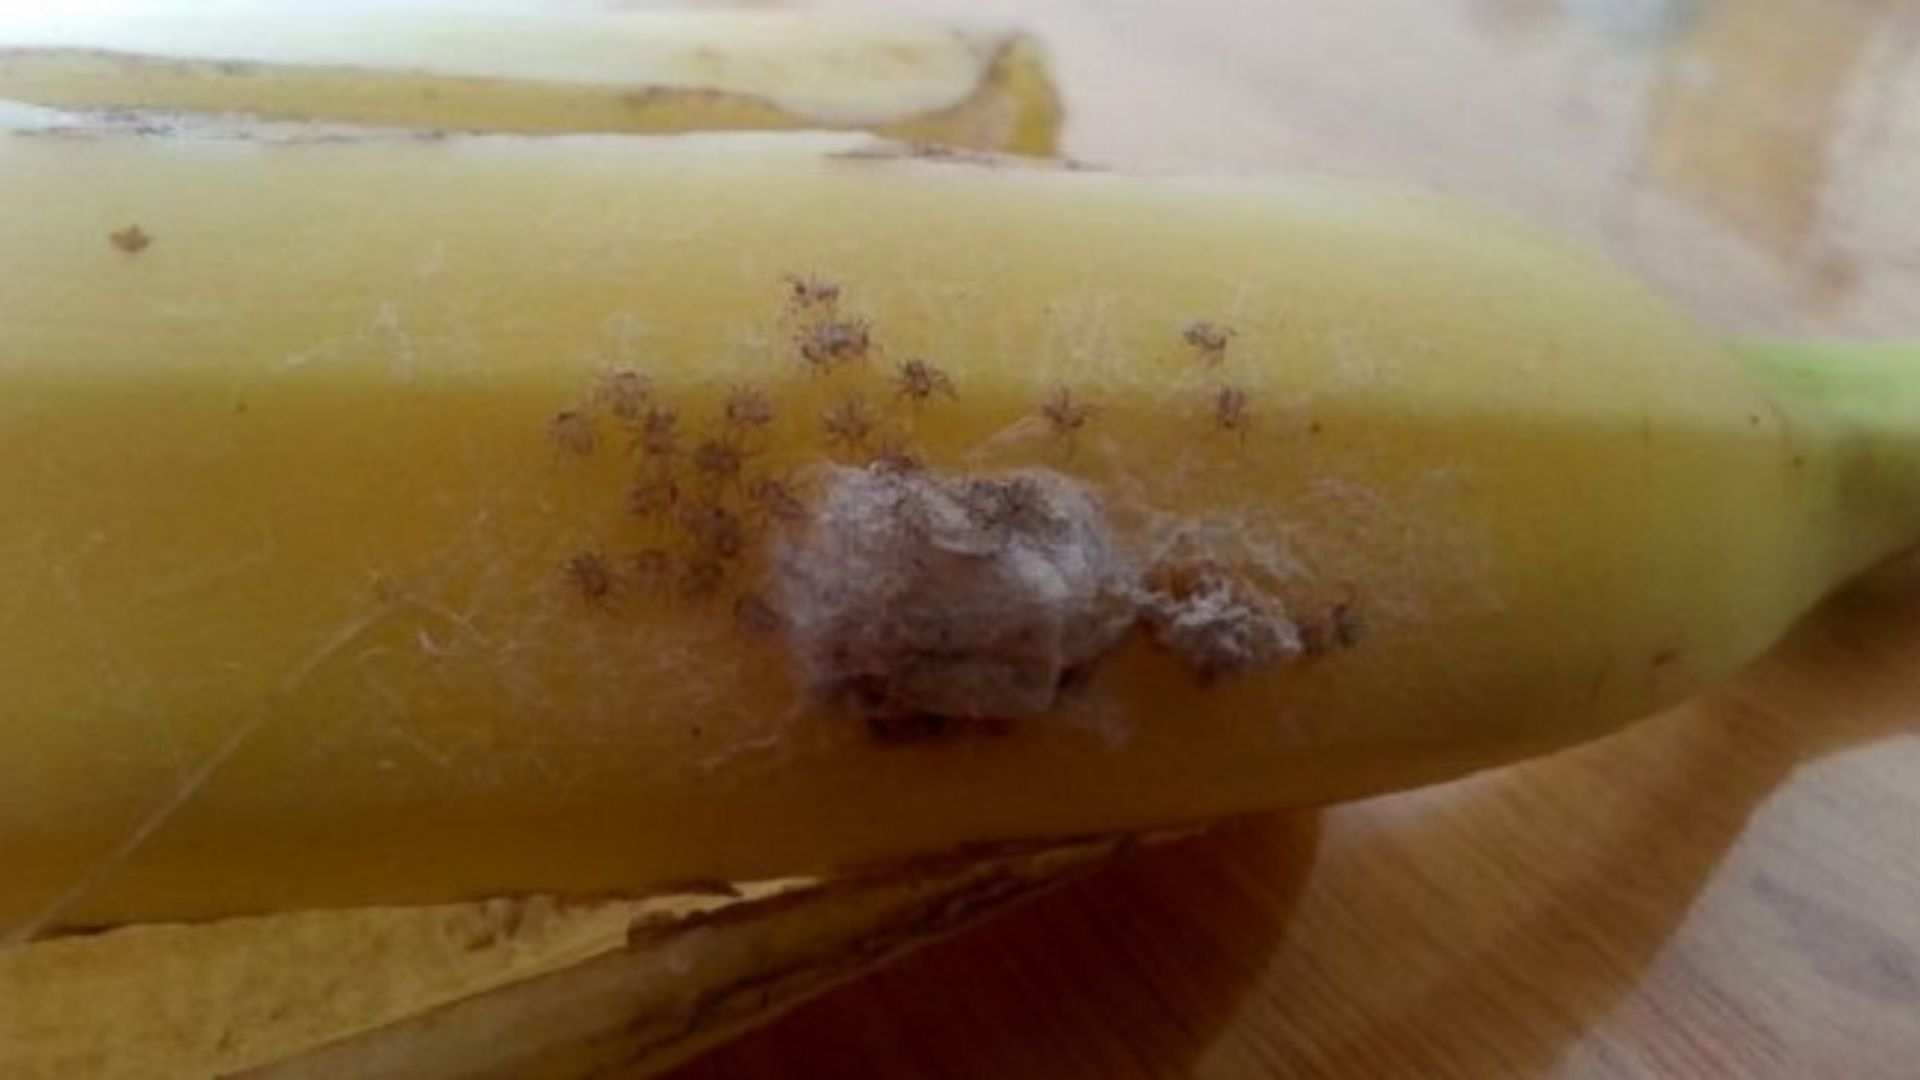 If you see white spots on banana throw it away immediately